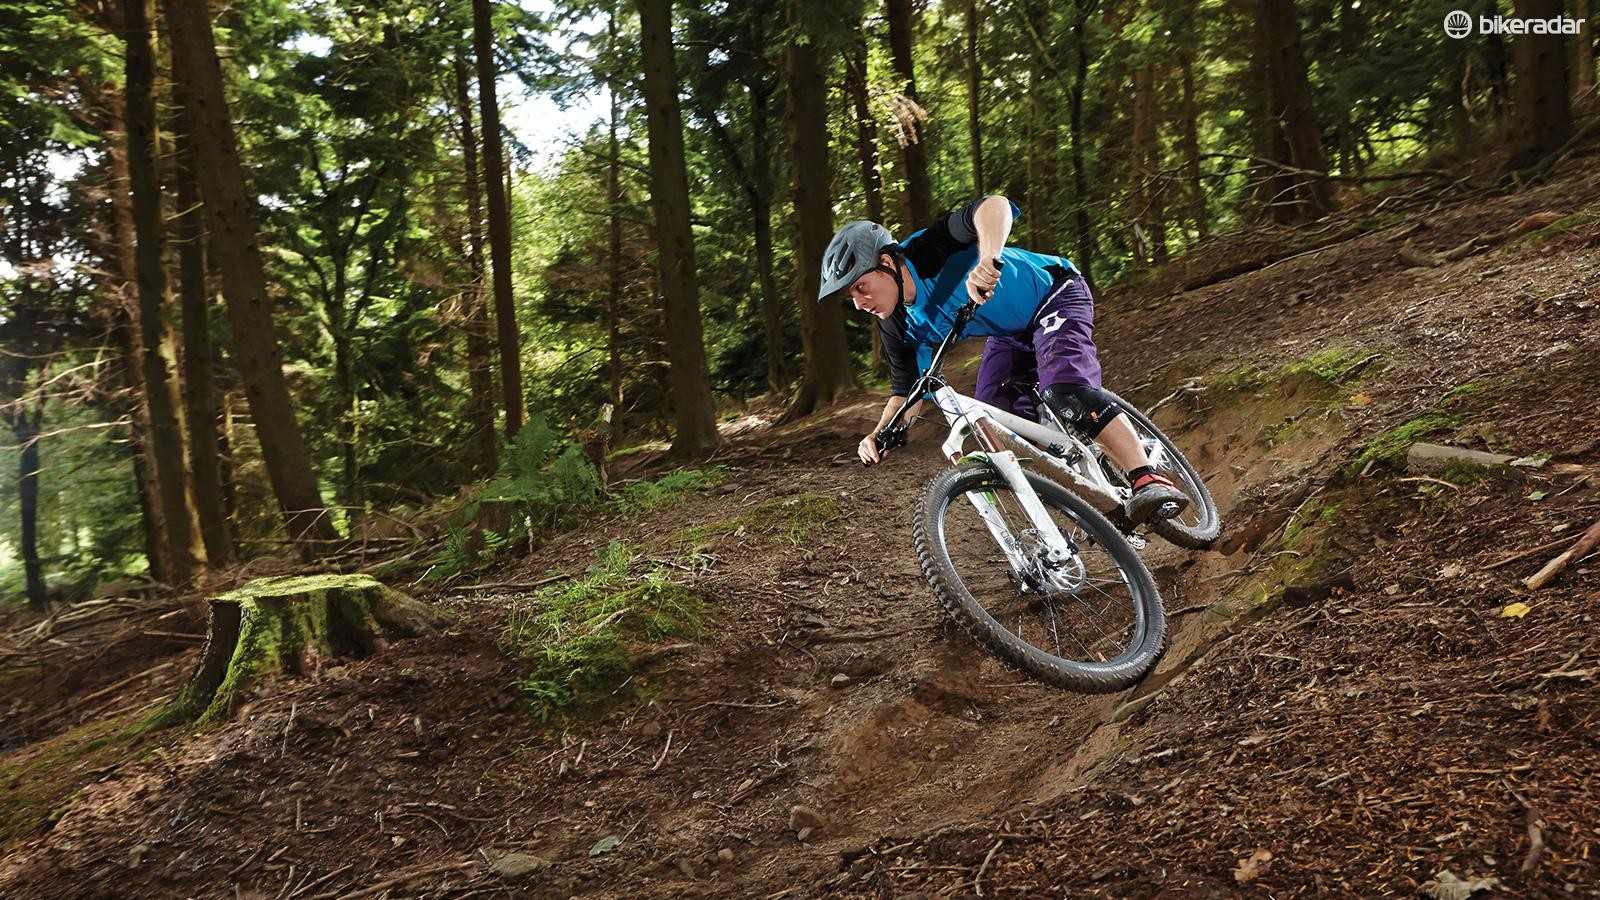 Tested by Dan Atherton on the enduro circuit, the Sanction Expert is ready to race